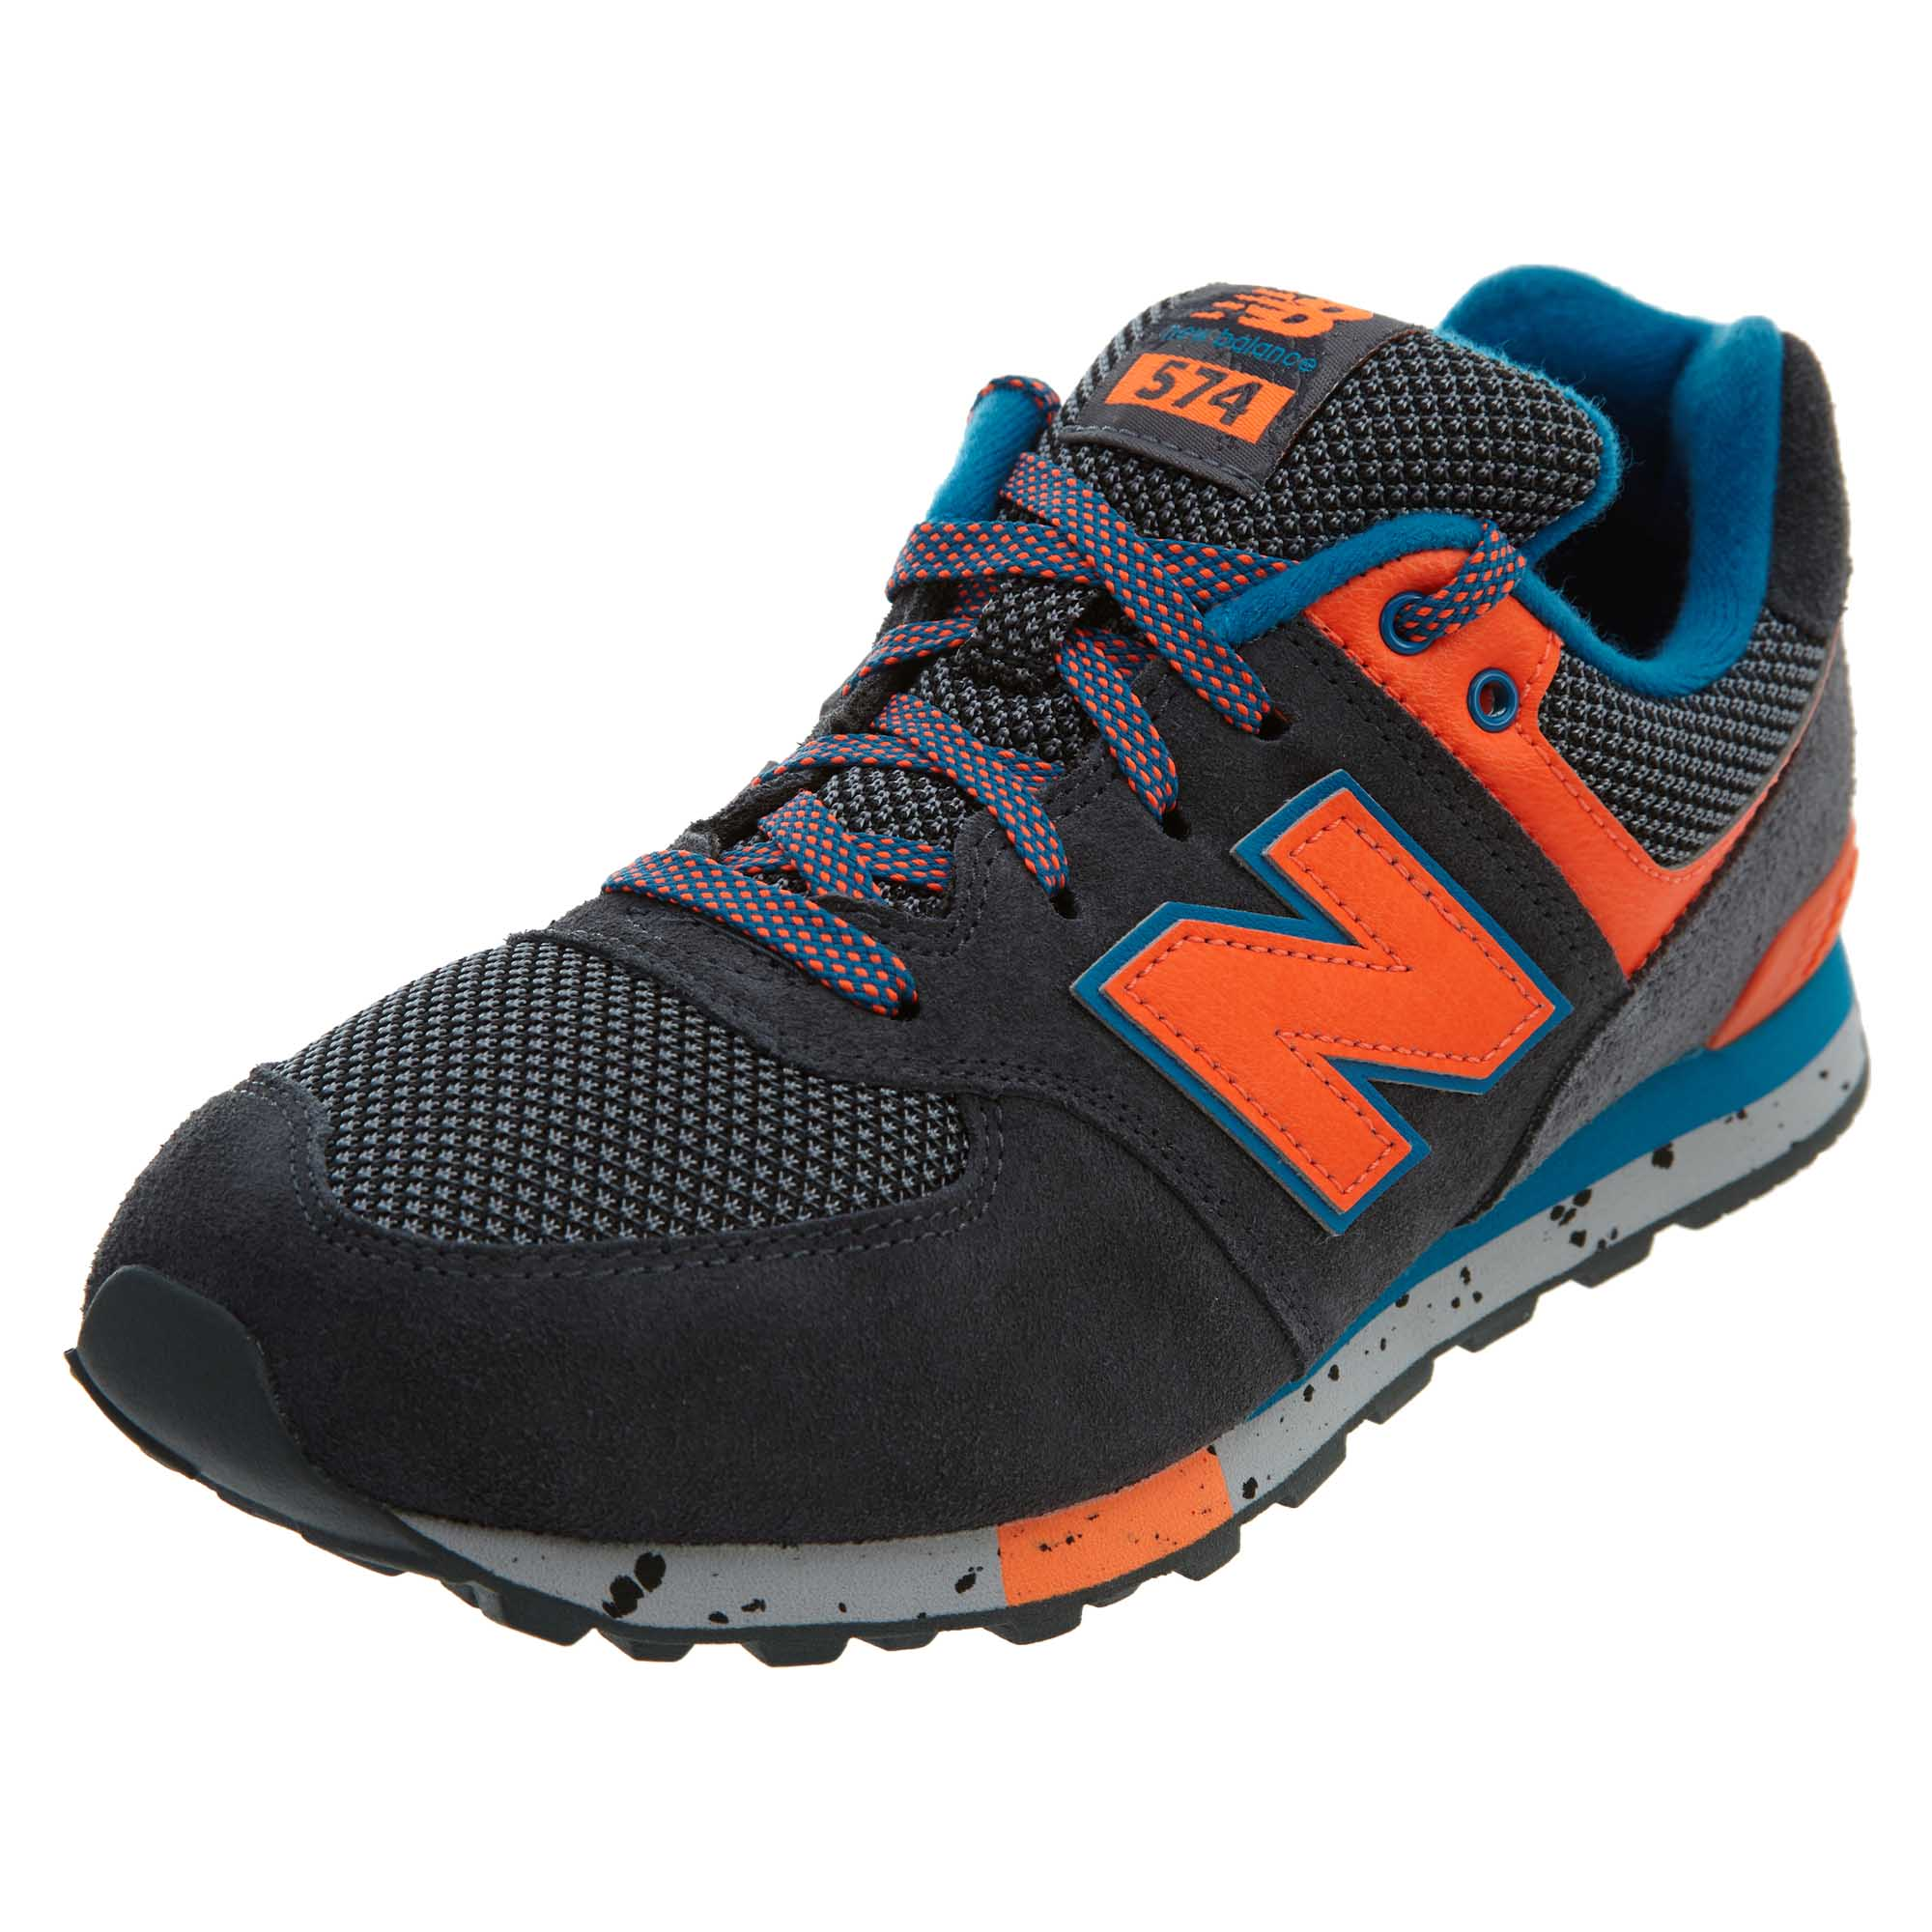 info for 78521 2616f Details about New Balance Big Kids 574 Classic Running Shoes Dark Grey  Orange Blue KL574-9OG